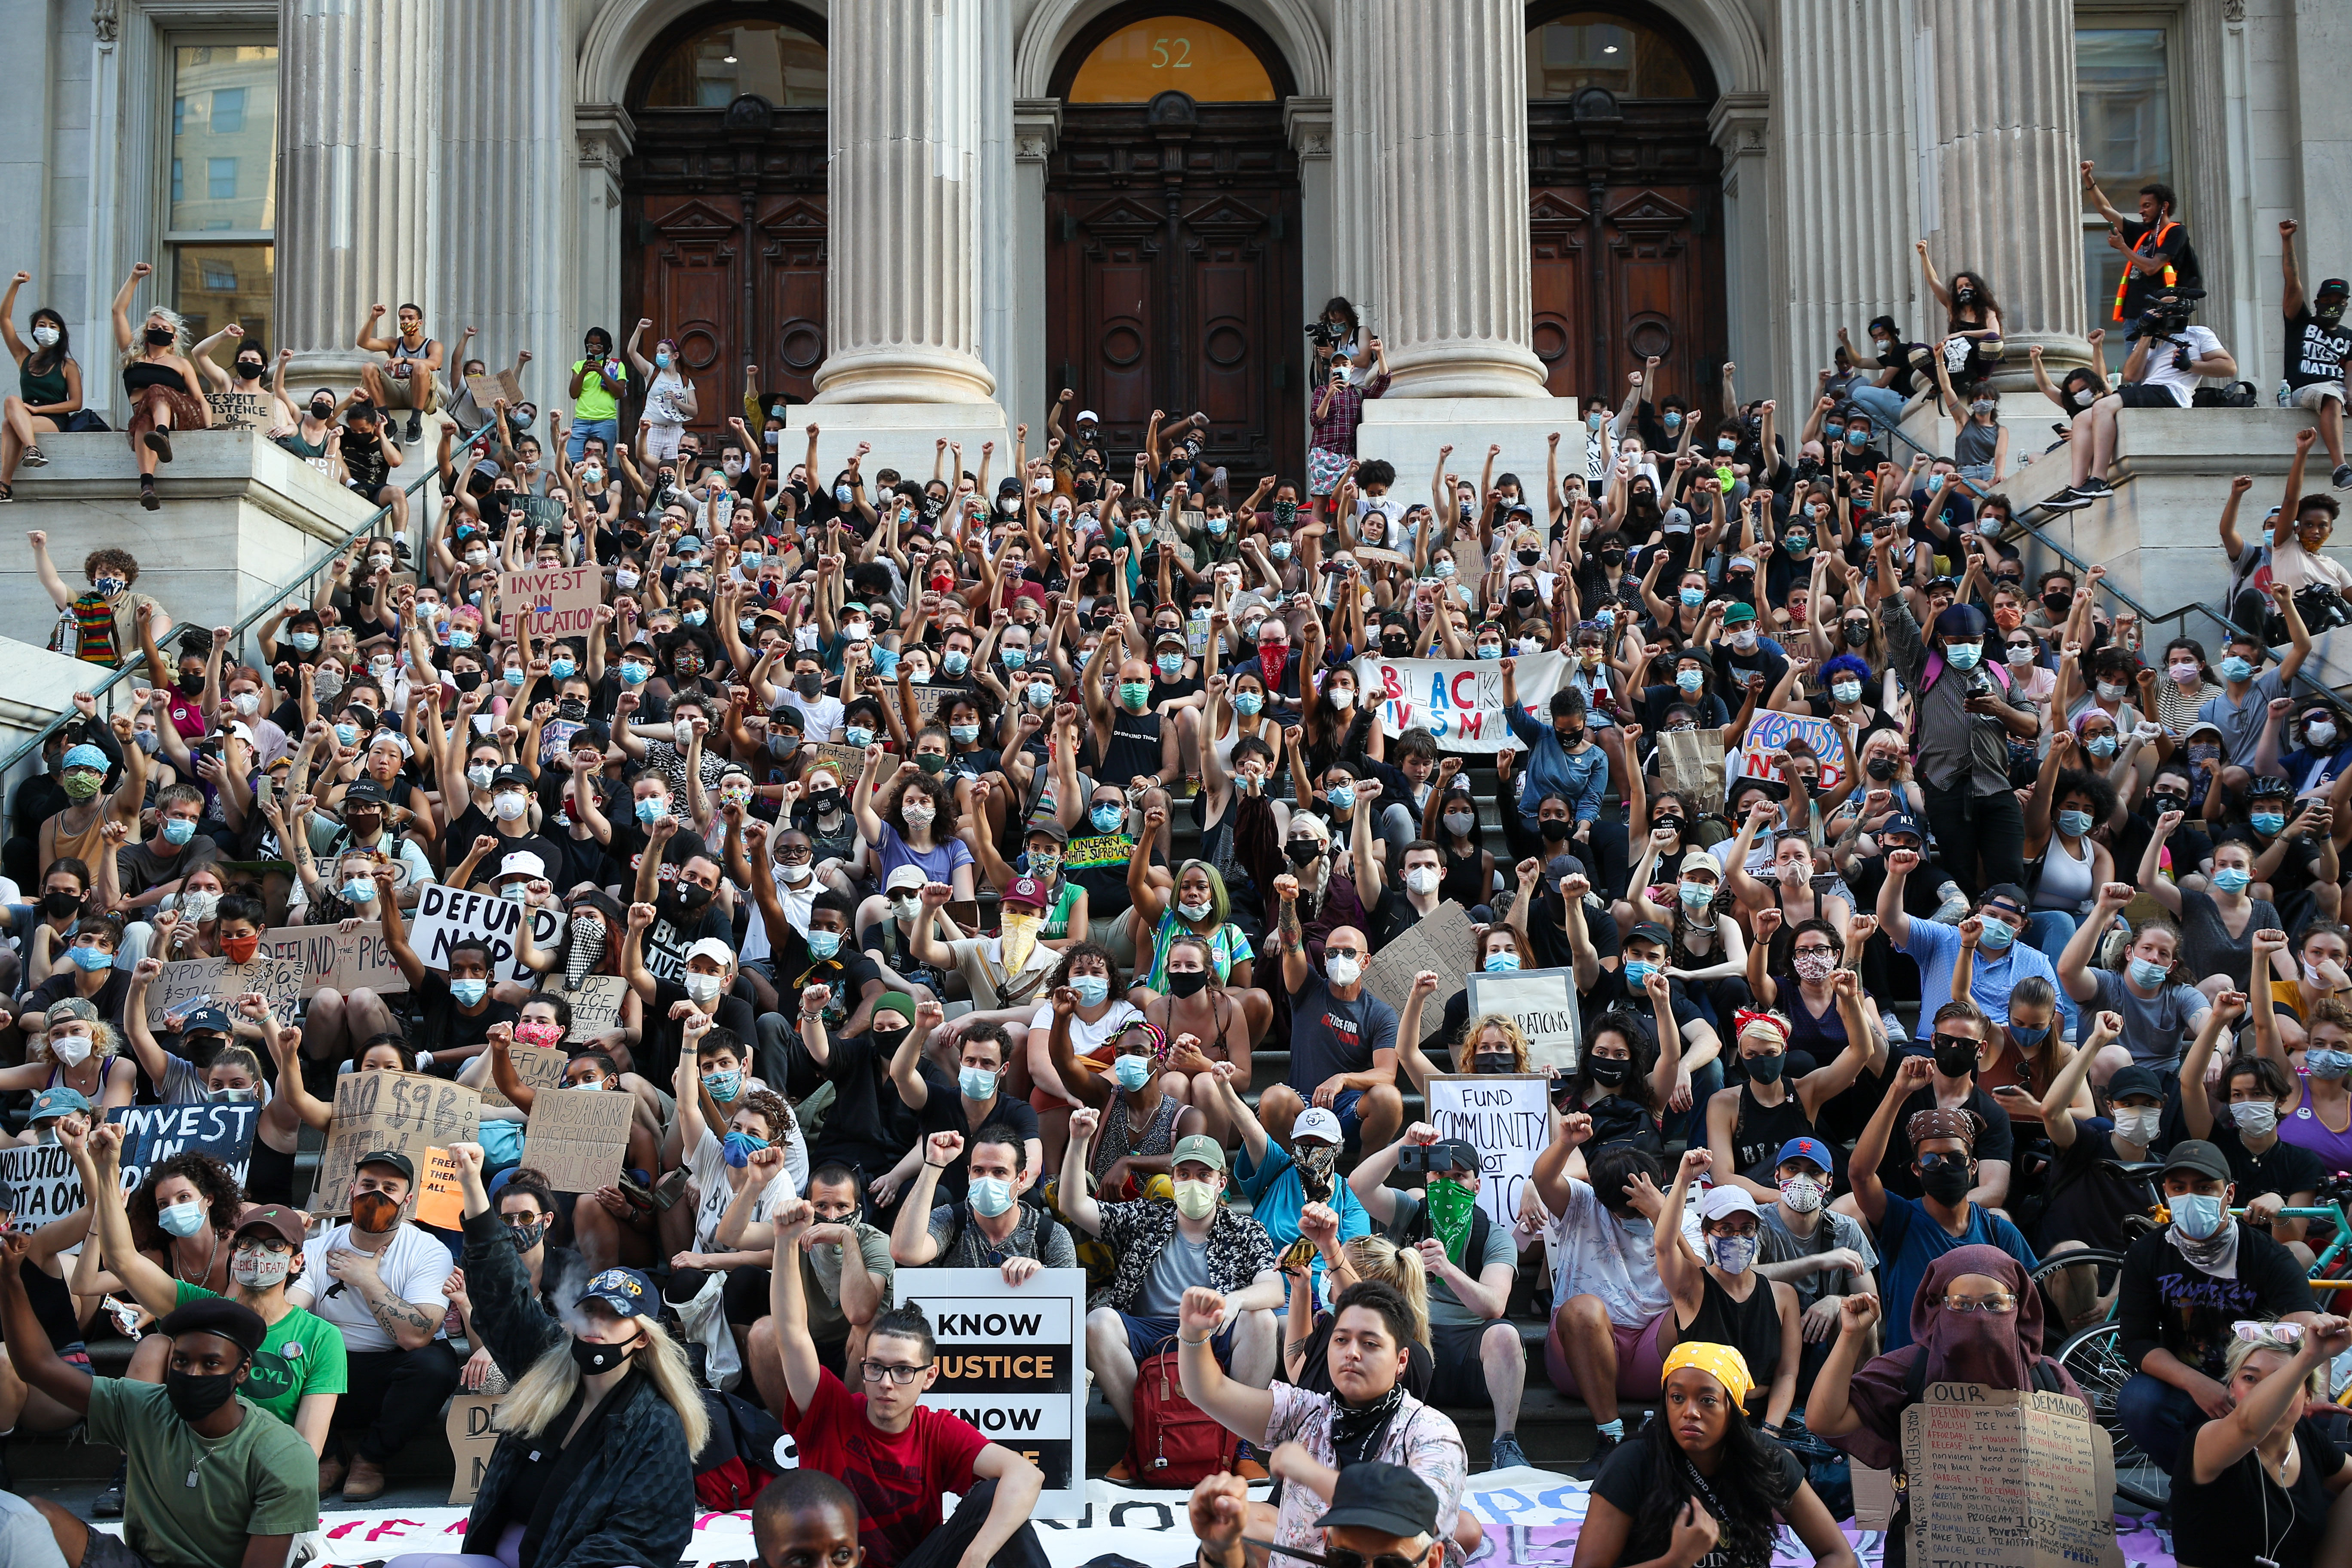 People sit by Tweed Courthouse, near New York City Hall, during an anti-racist protest on June 23.